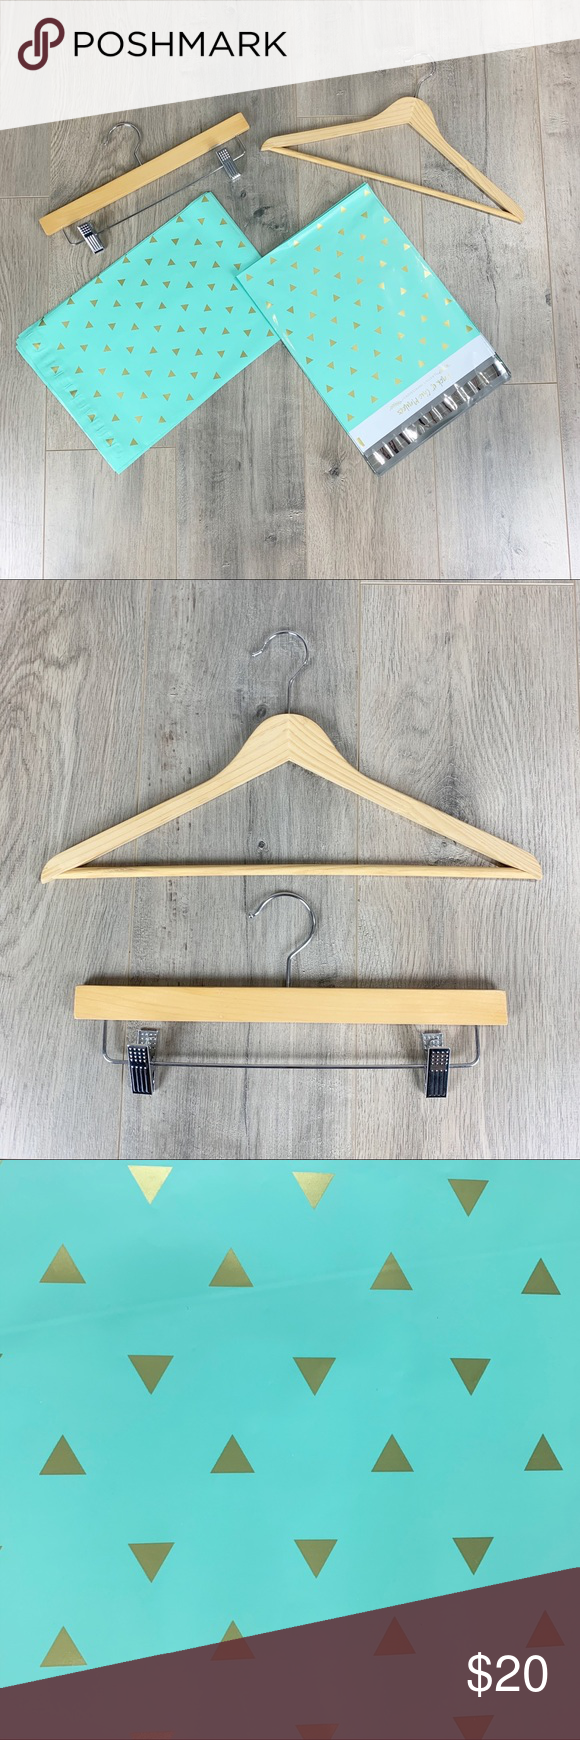 Poshmark Starter Kit with Wooden Hangers & Mailers Step up